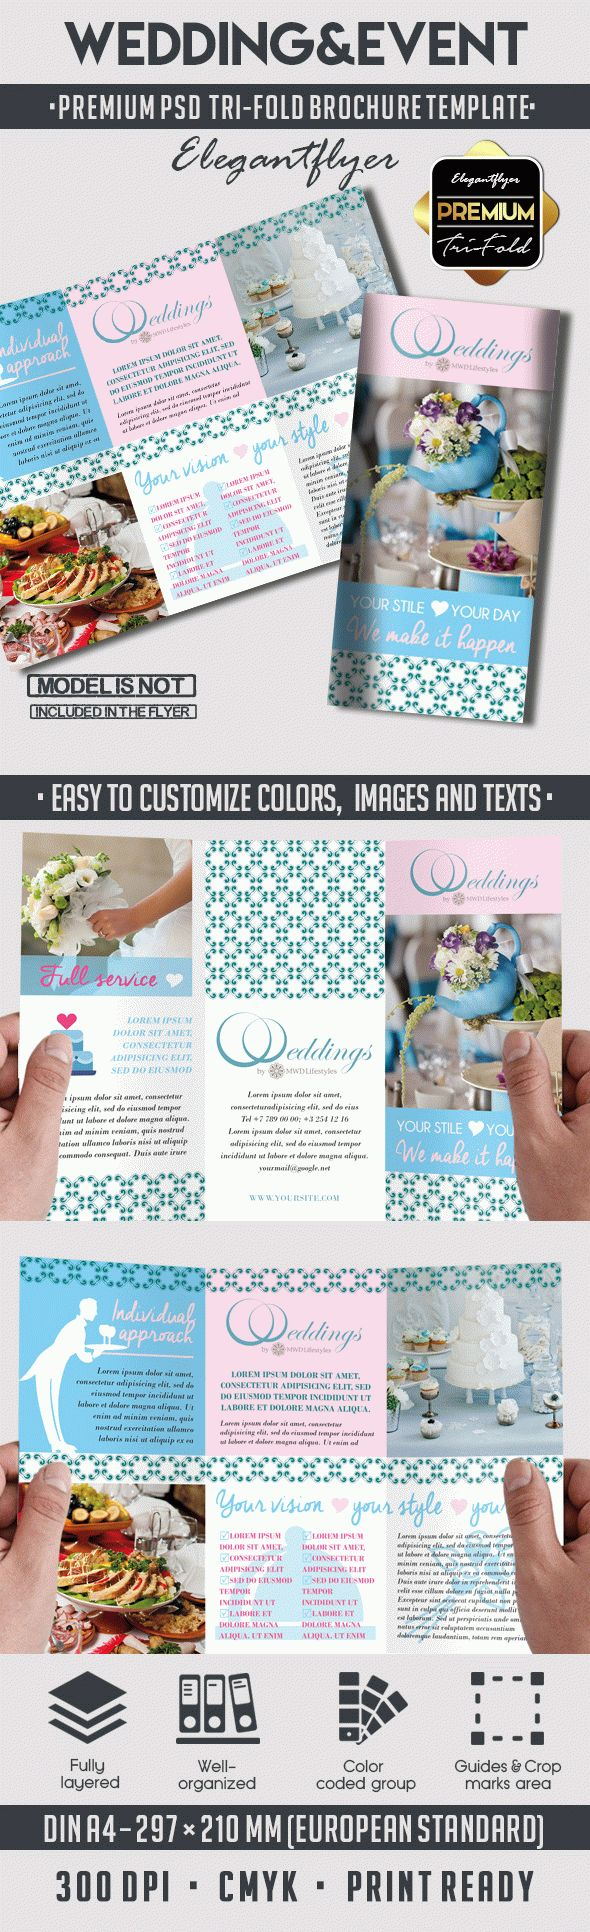 Wedding&Event – Premium Tri-Fold PSD Brochure Template